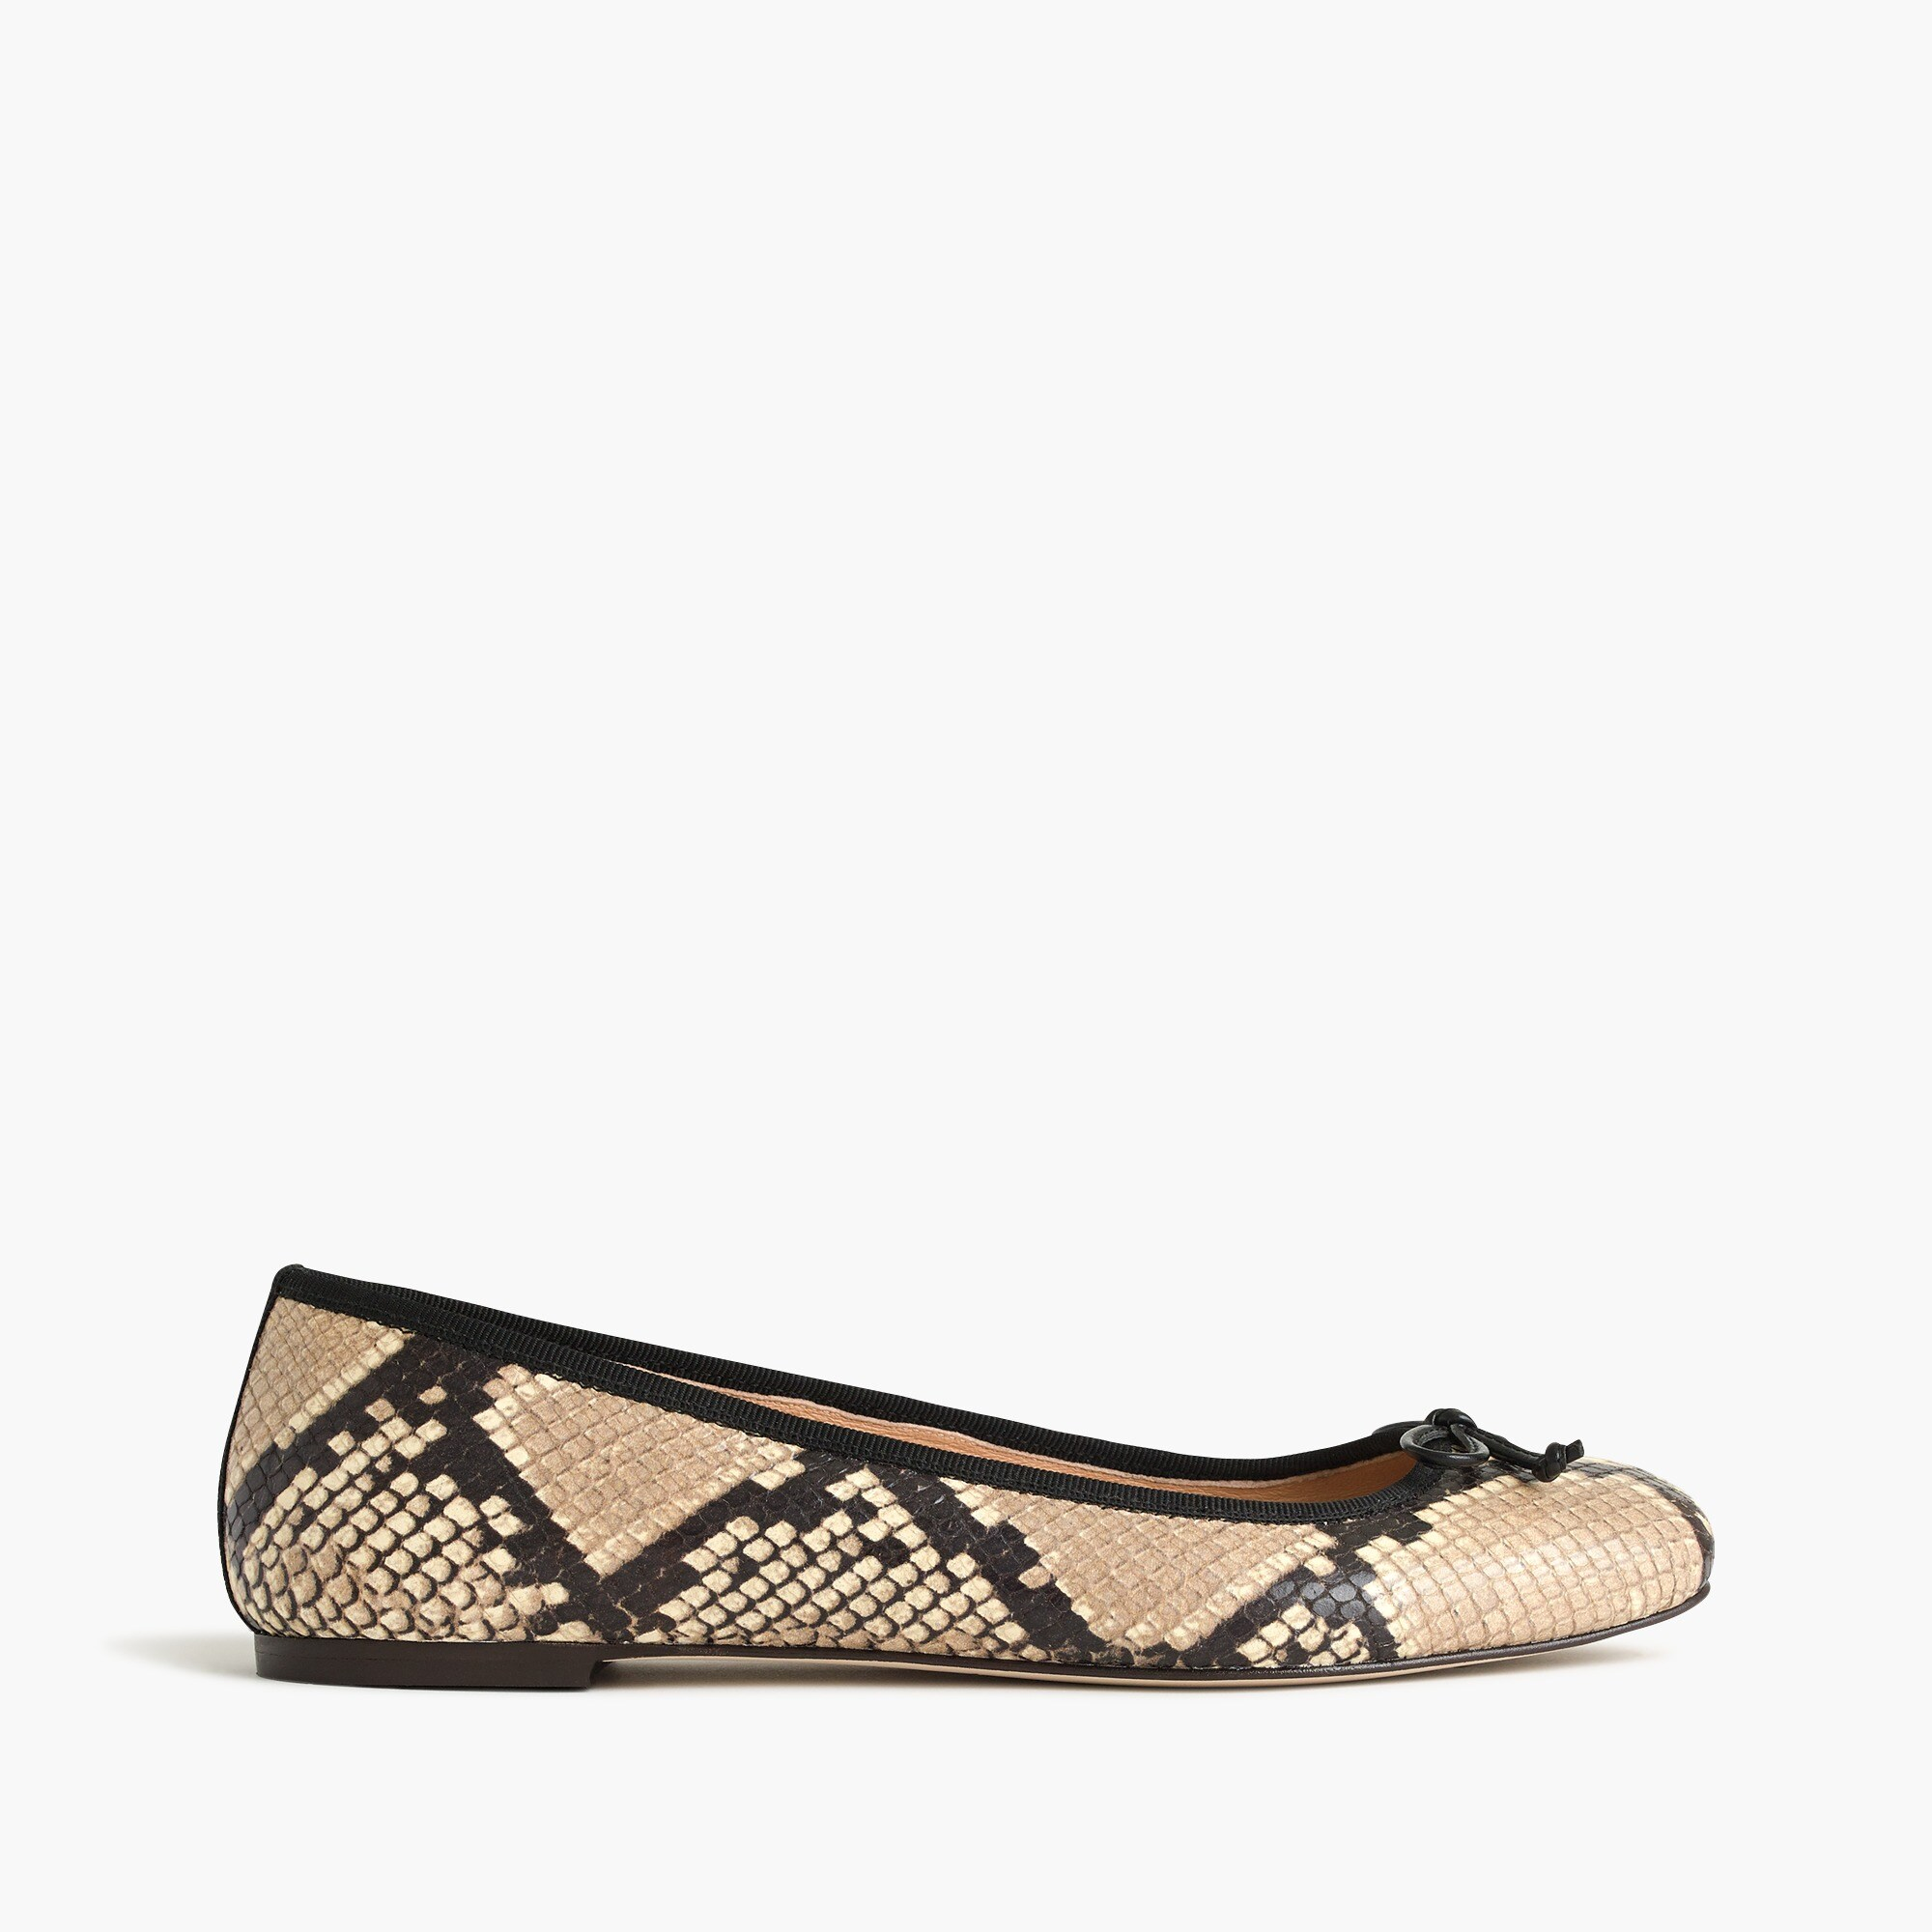 Image 1 for Lily ballet flats in snakeskin-printed leather